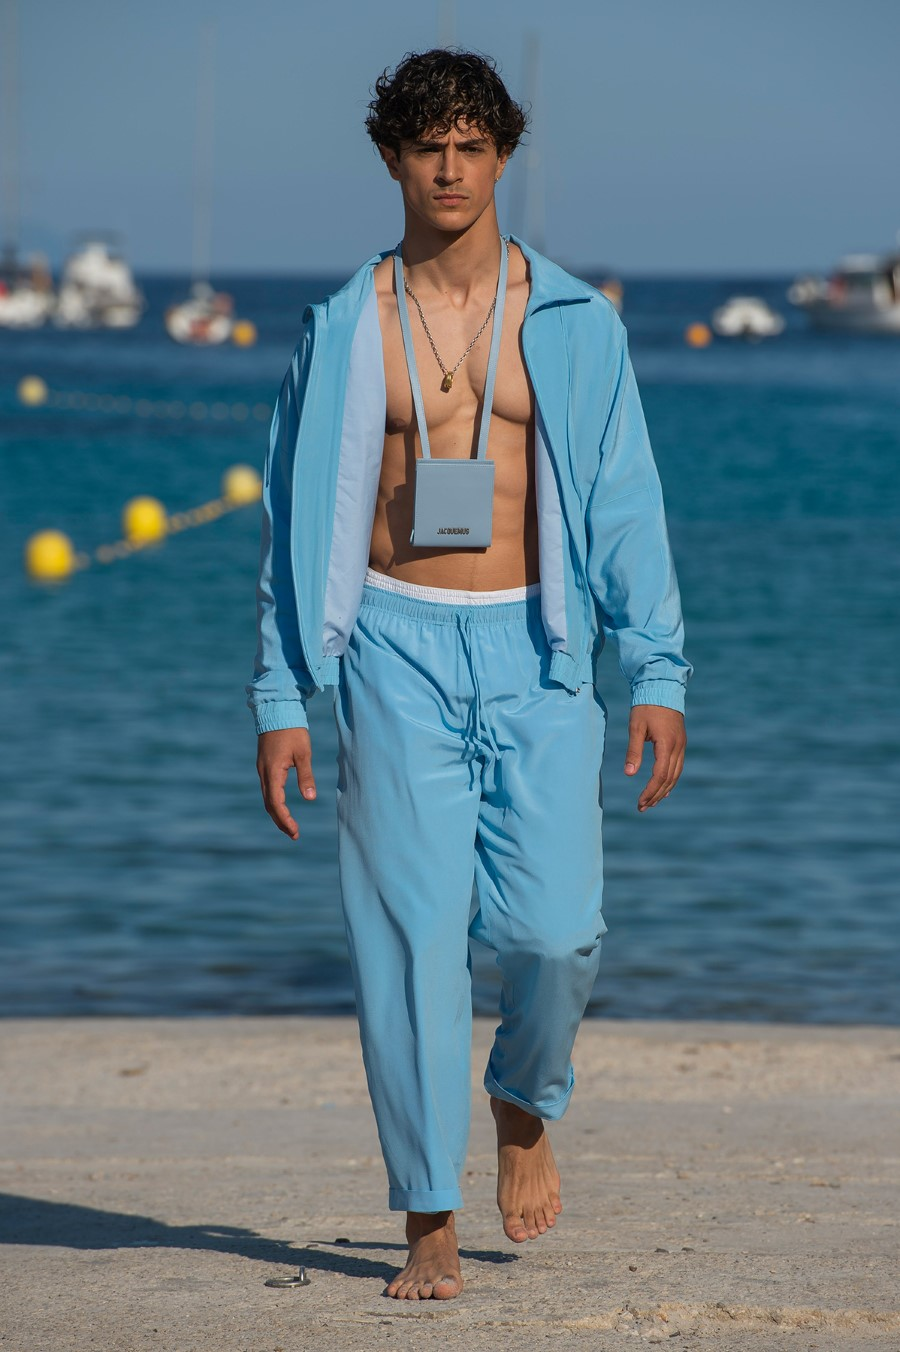 Jacquemus Men's Spring Summer 2019